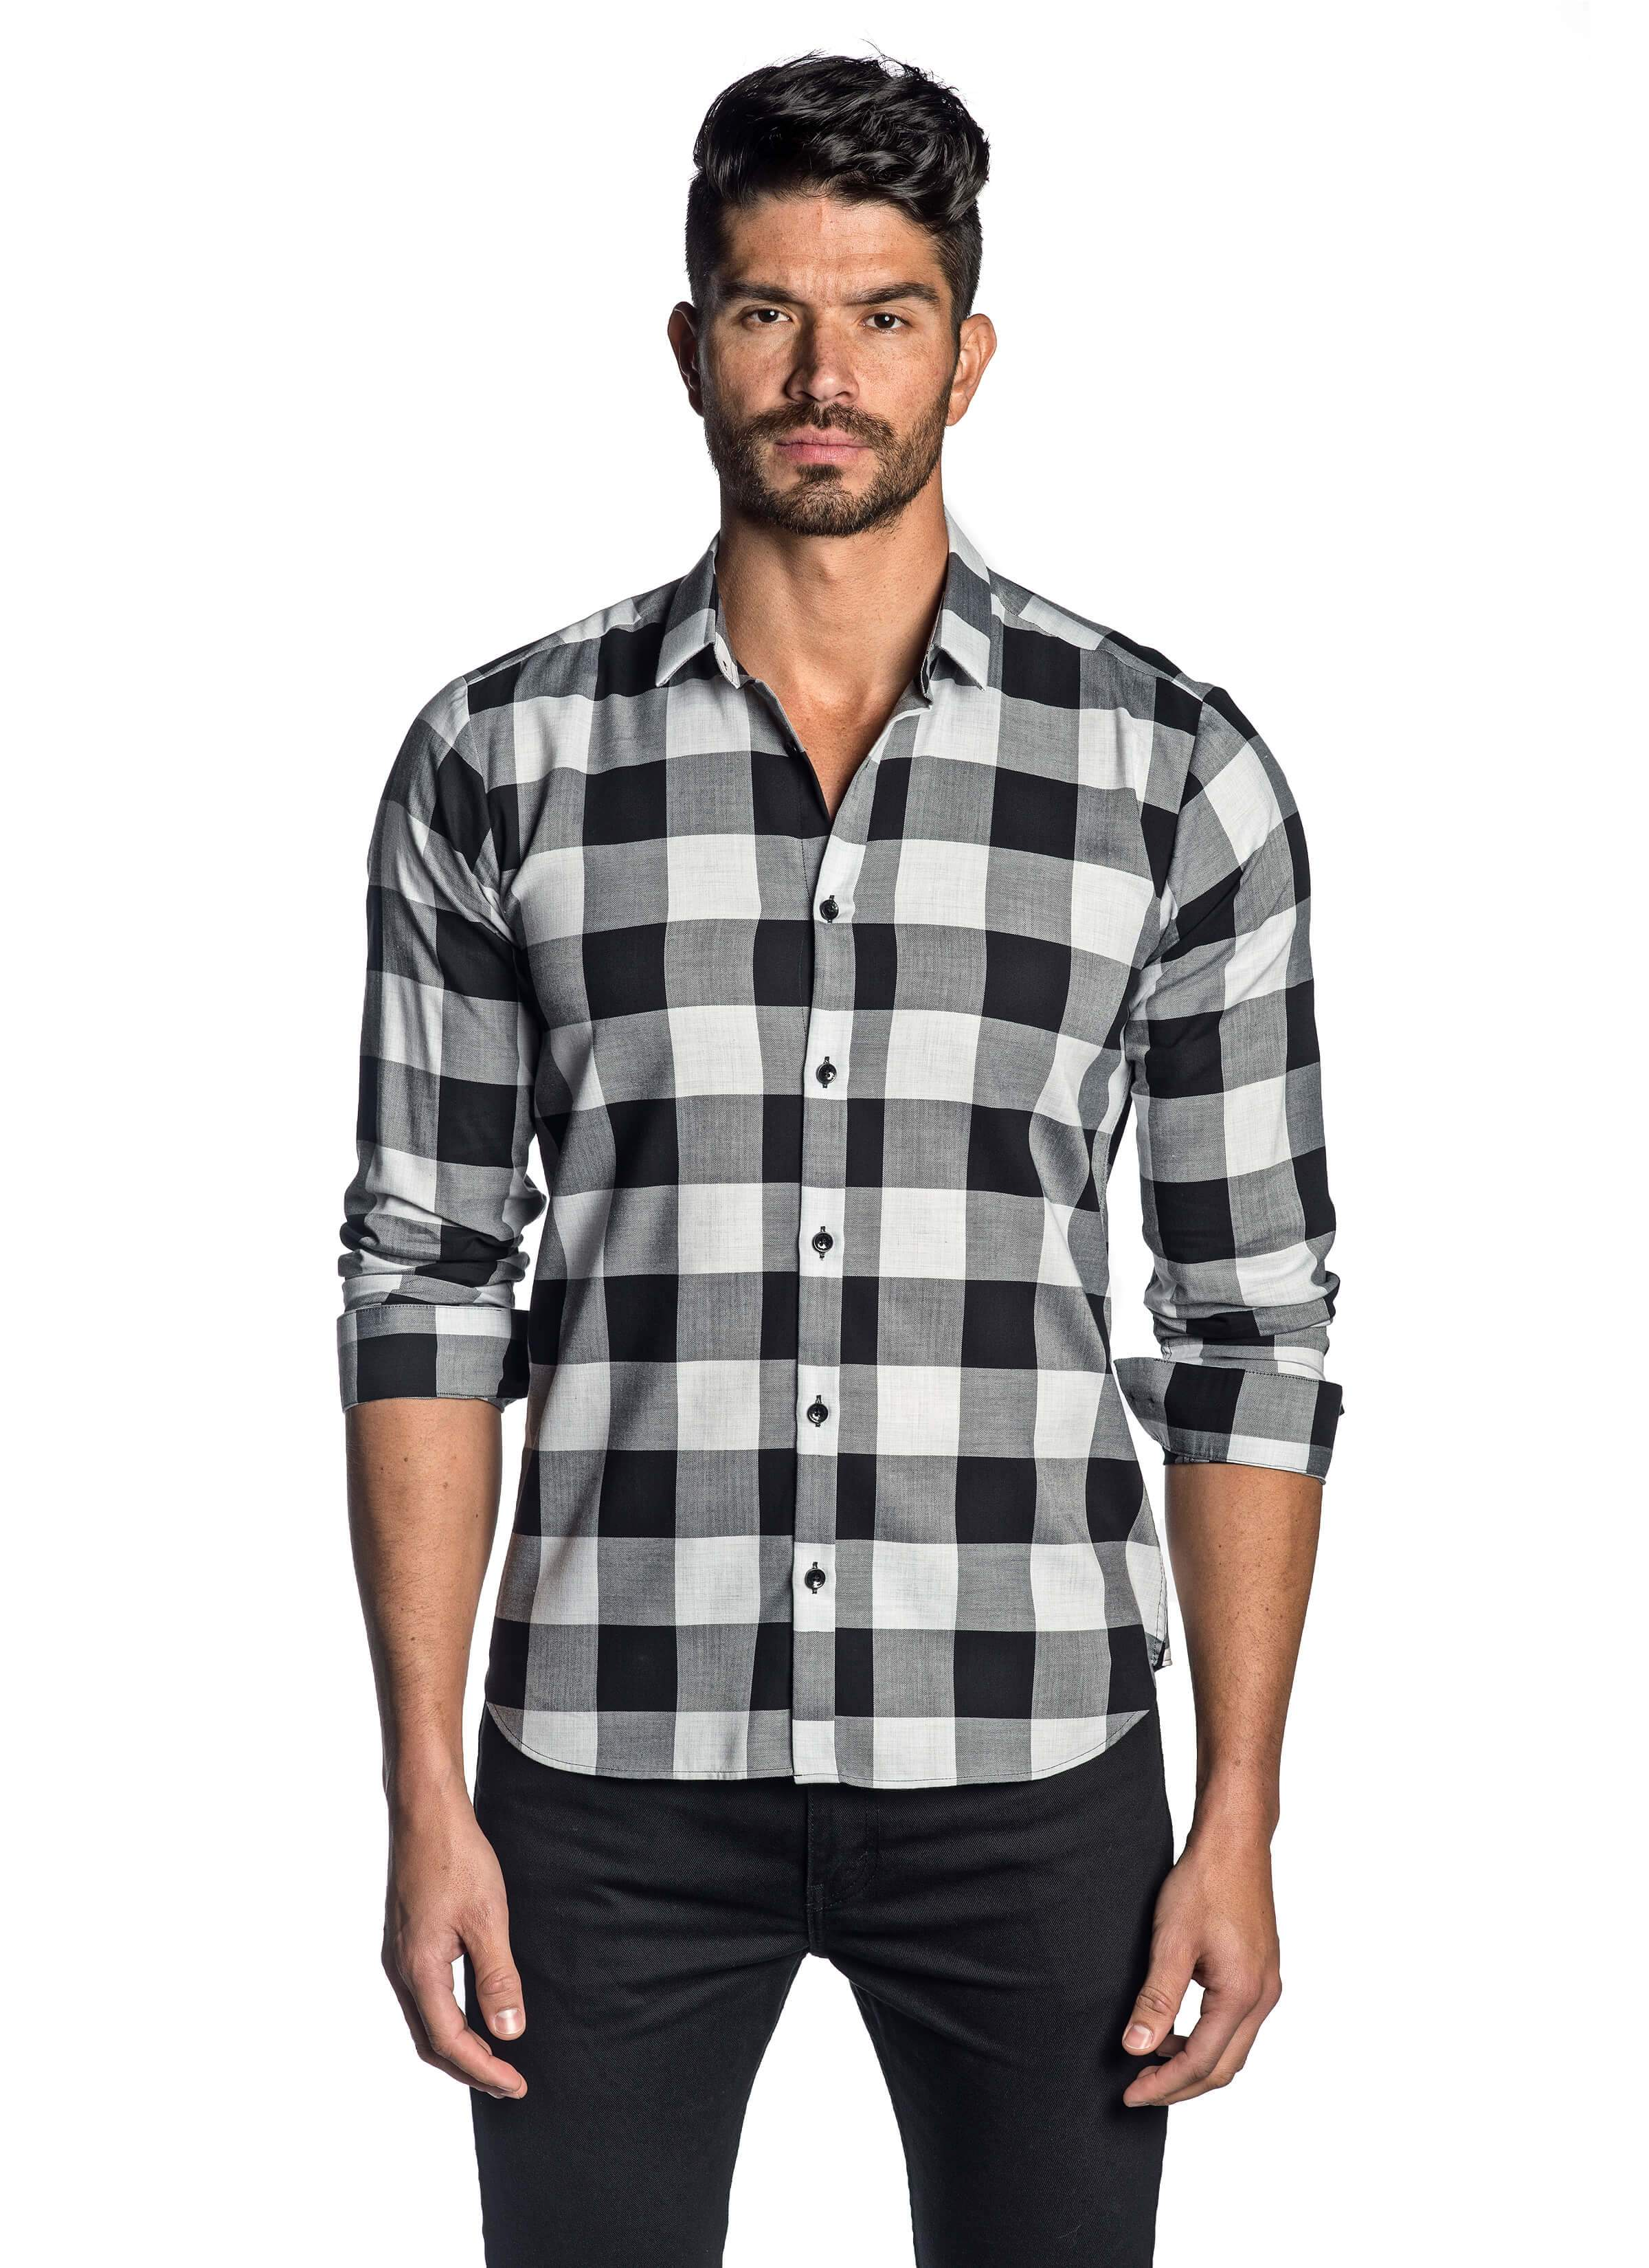 Grey Black Check Shirt for Men AH-T-8095